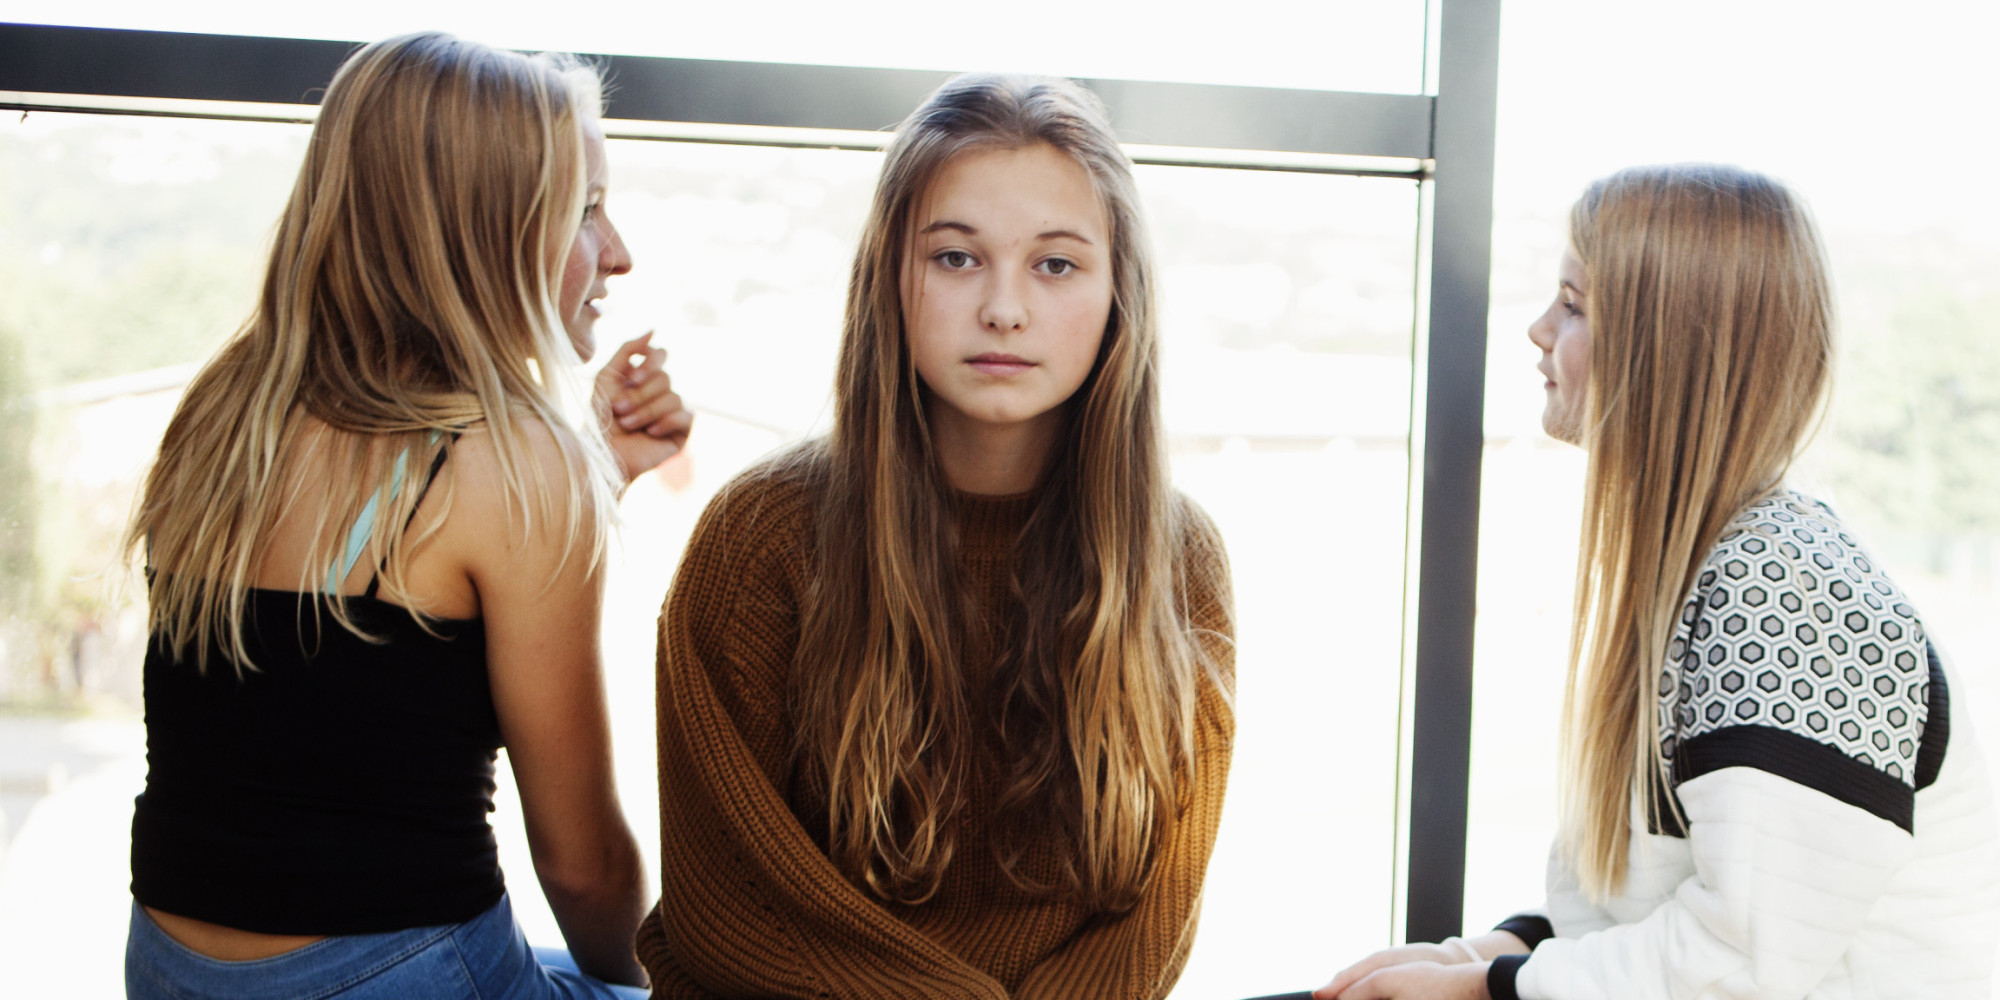 a study on teen bullying Case study 1: teen suicide student notes suicide and mental health issues in general are legitimate topics for community and media discussion.